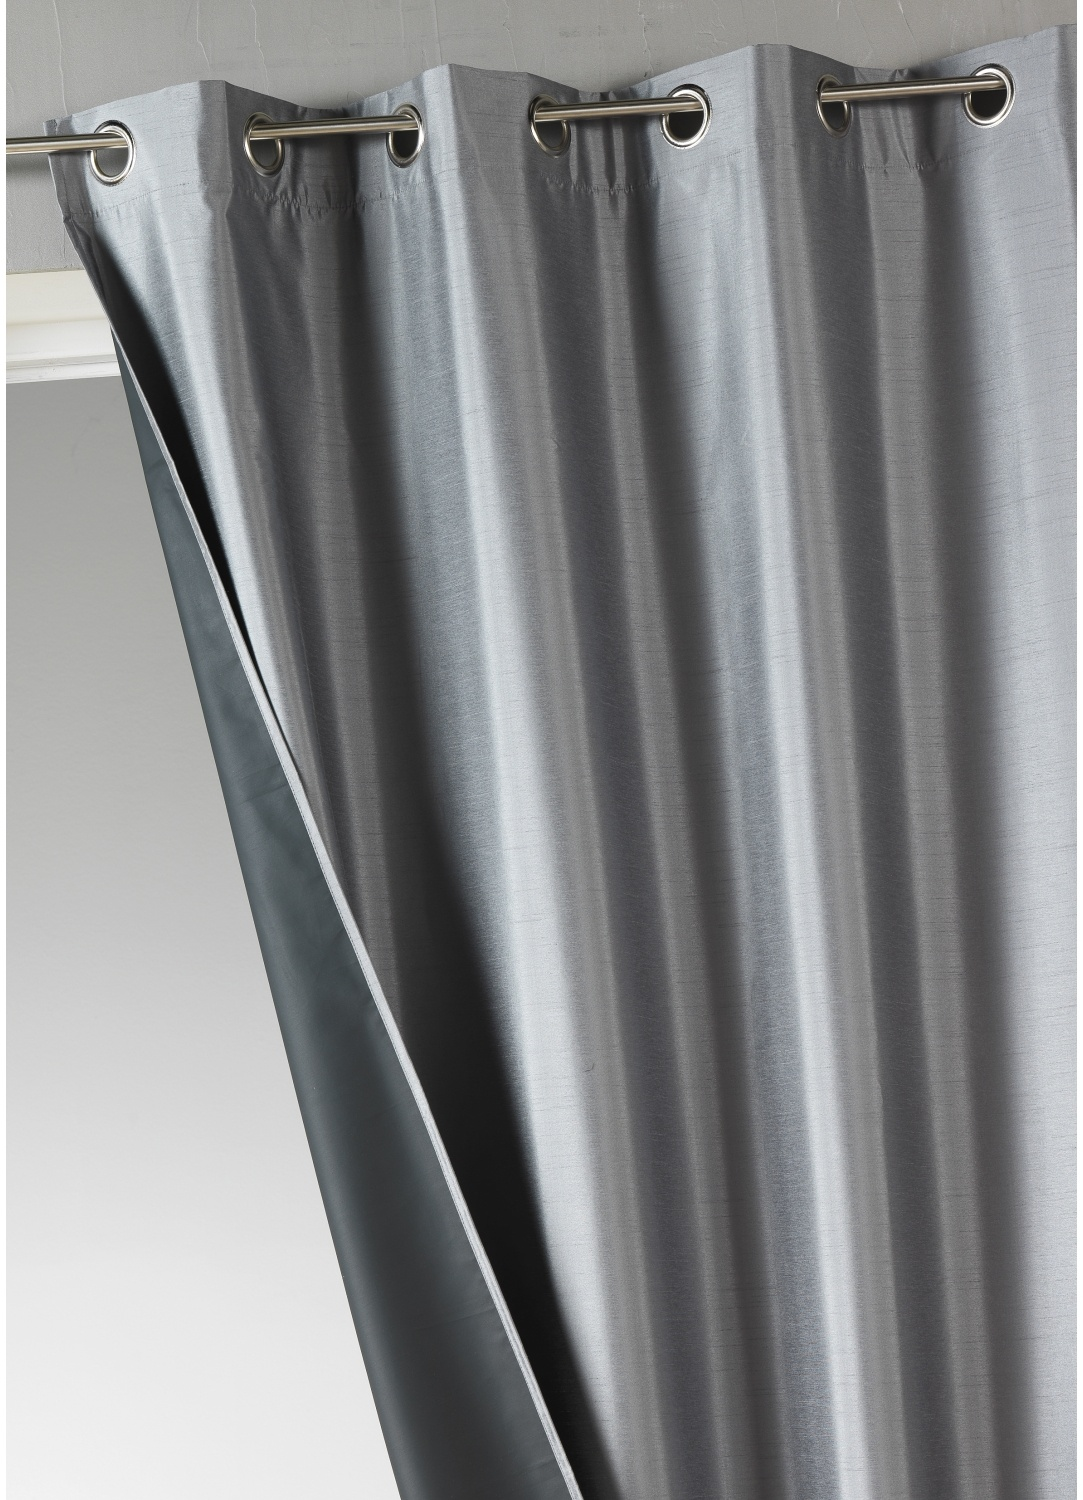 Rideau uni en shantung occultant 3 couches (Anthracite)